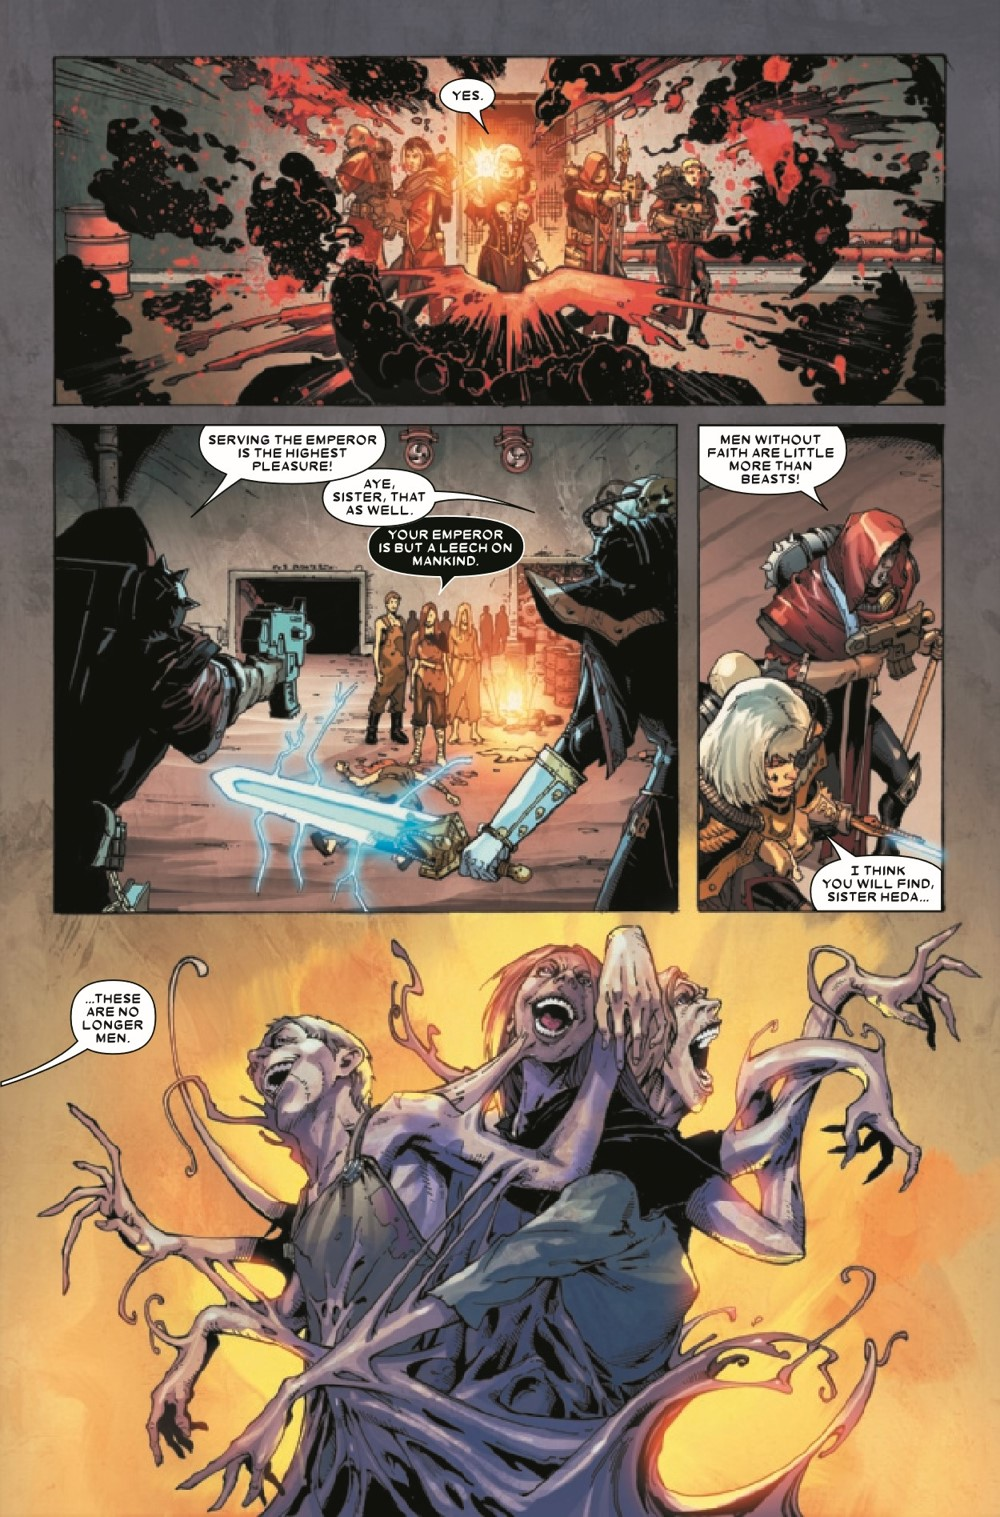 WARHAMMERSOB2021002_Preview-6 ComicList Previews: WARHAMMER 40000 SISTERS OF BATTLE #2 (OF 5)